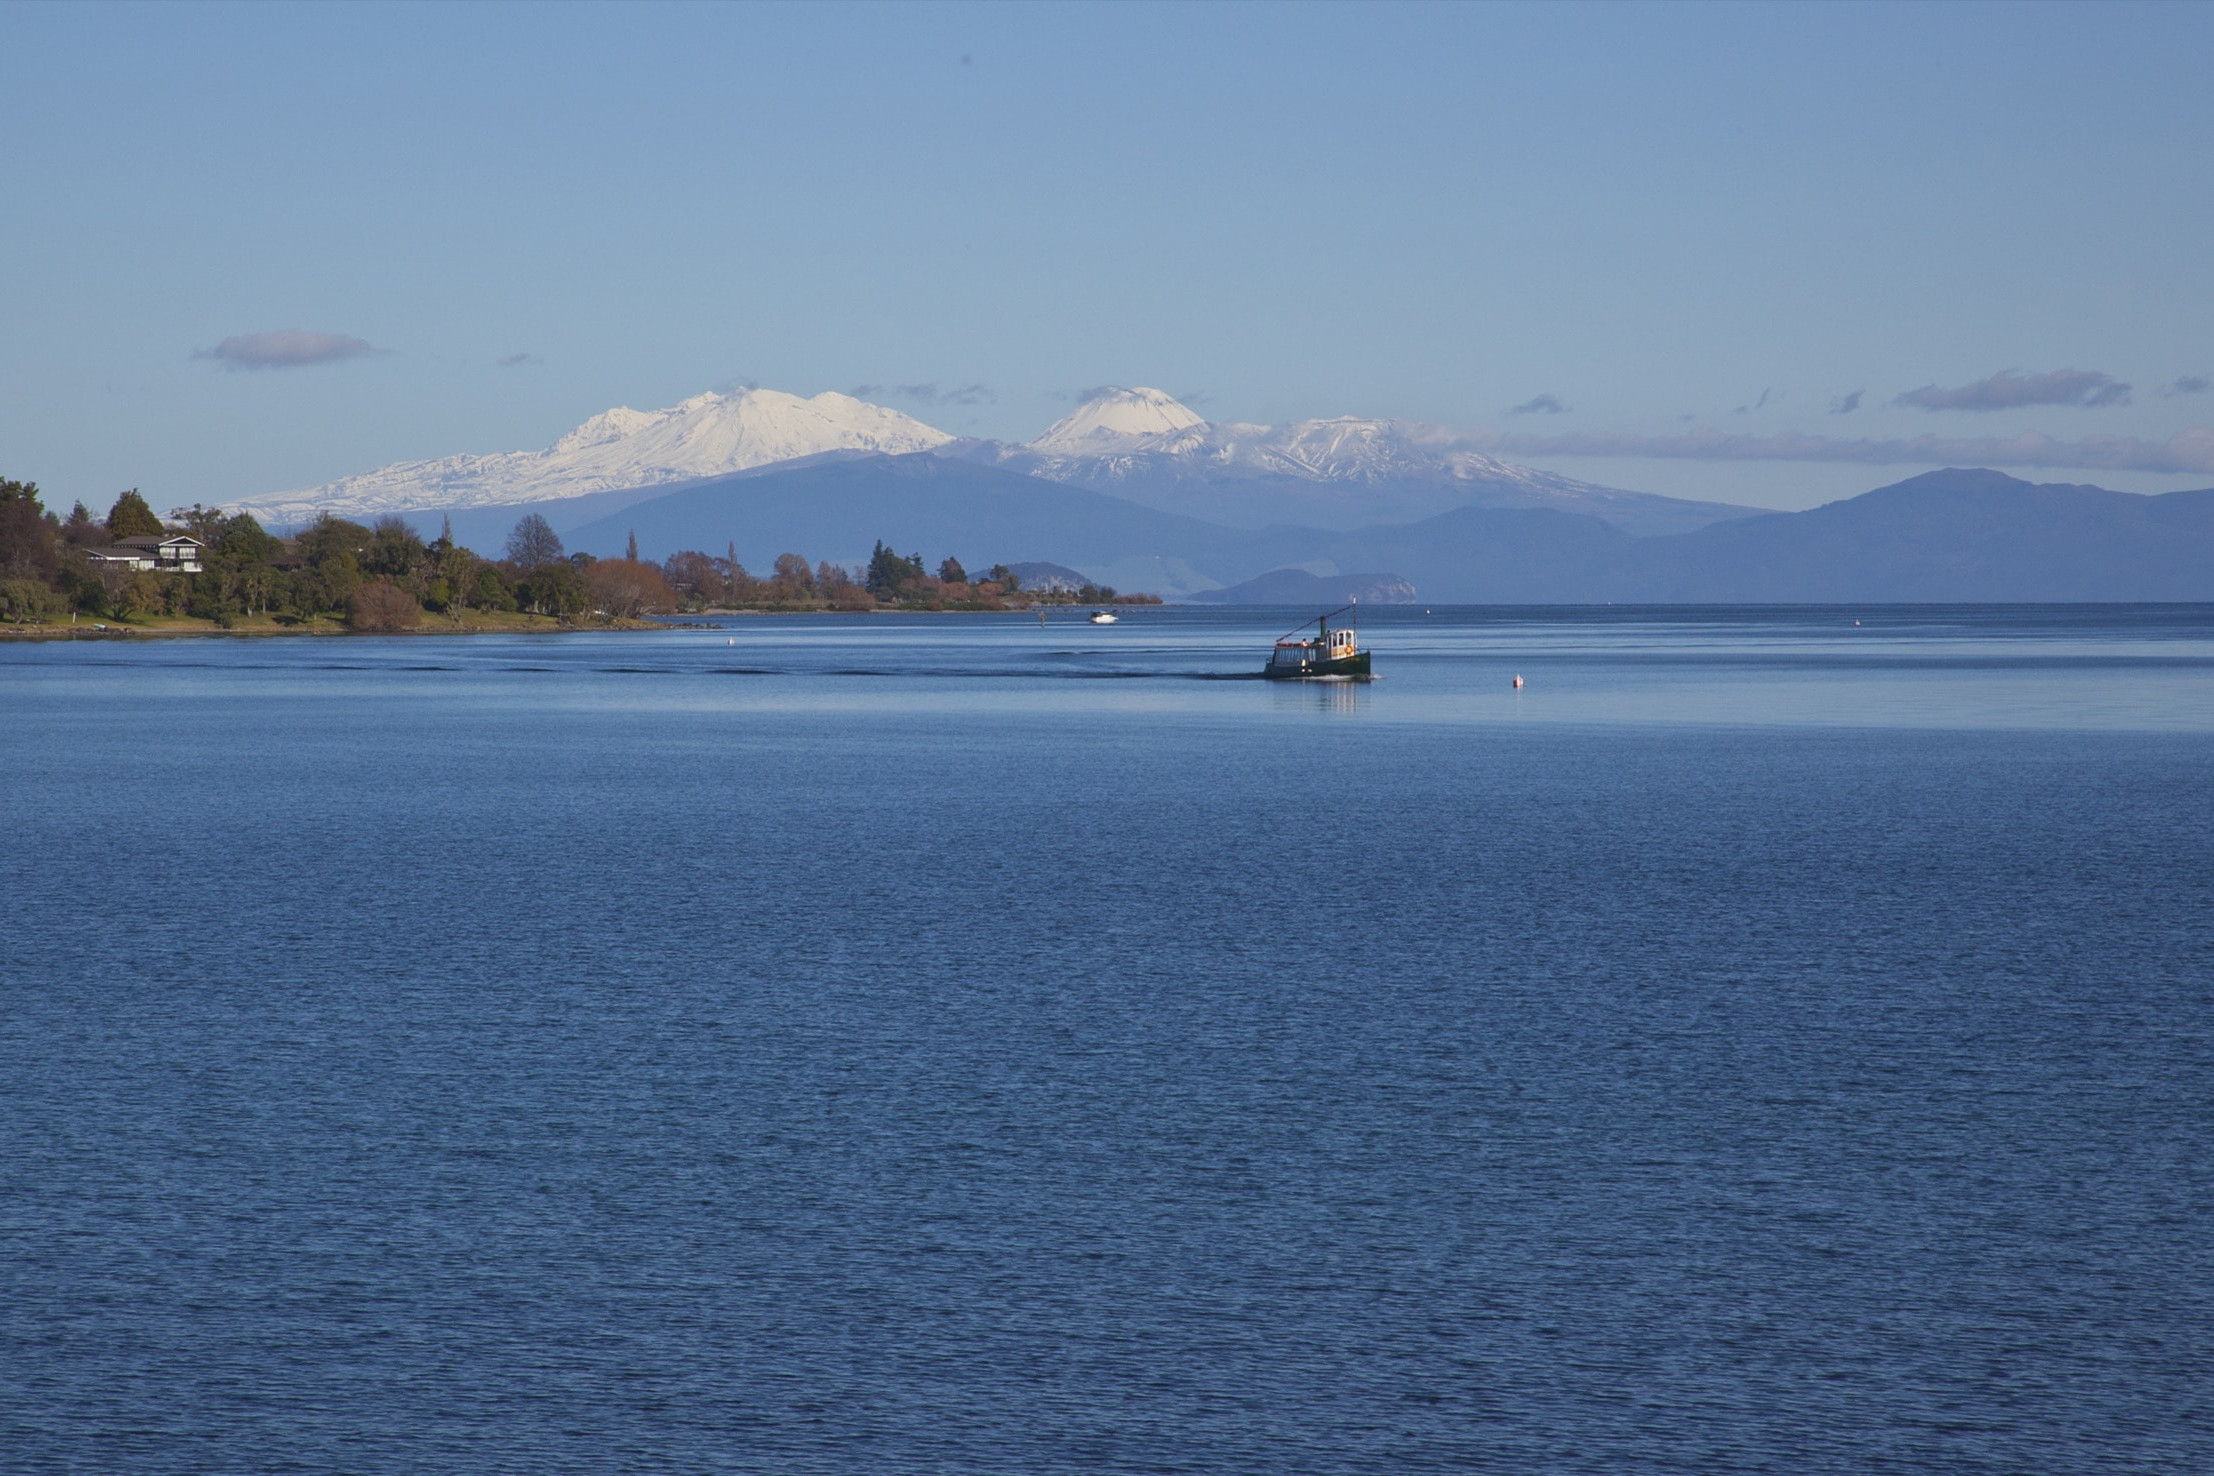 Lake Taupo - From Luxury Apartments with Ernst kemp.jpg